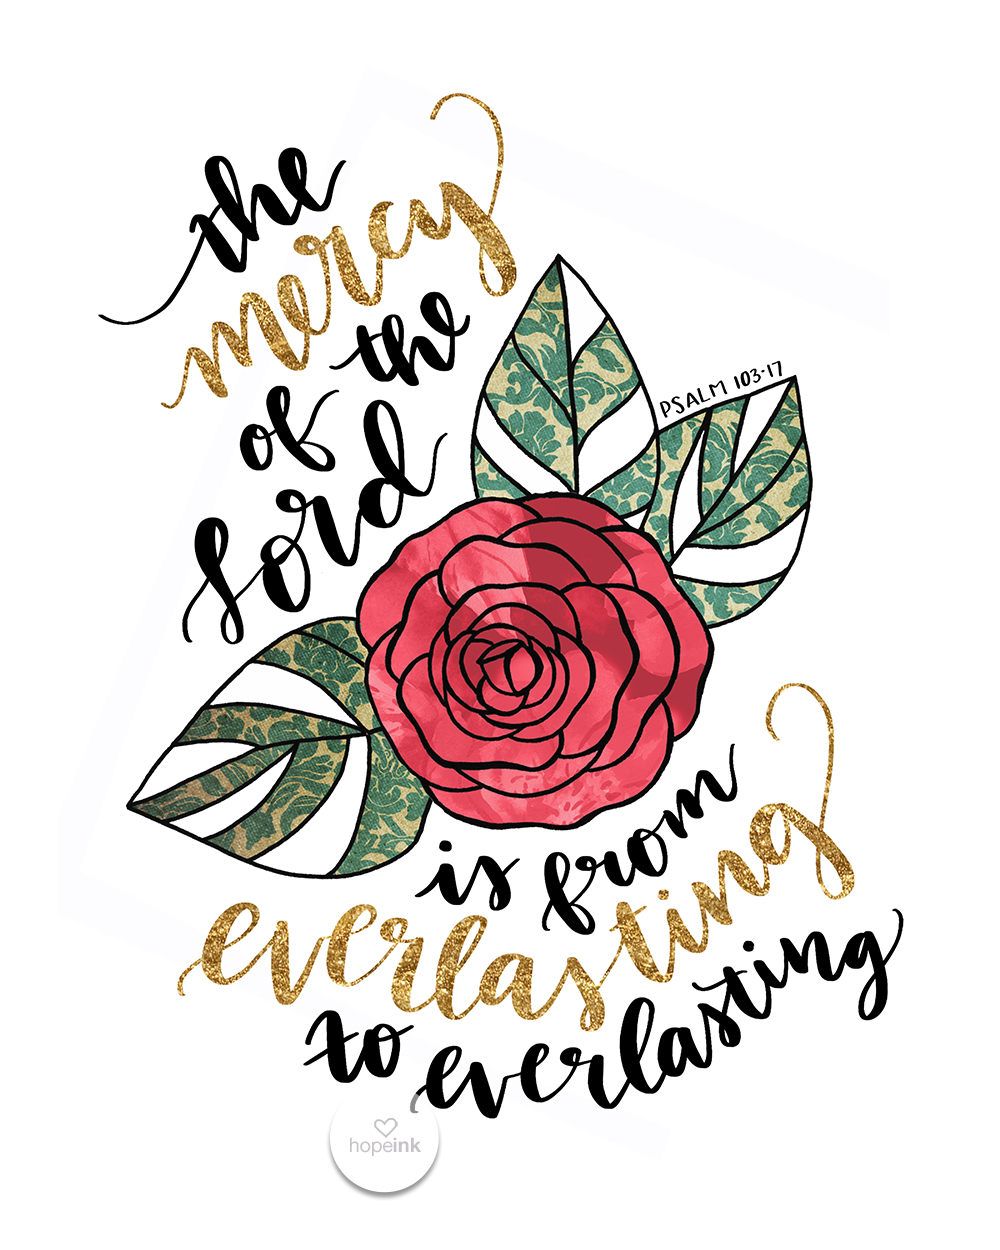 Everlasting Bible Verse Art | Hope Ink.jpg